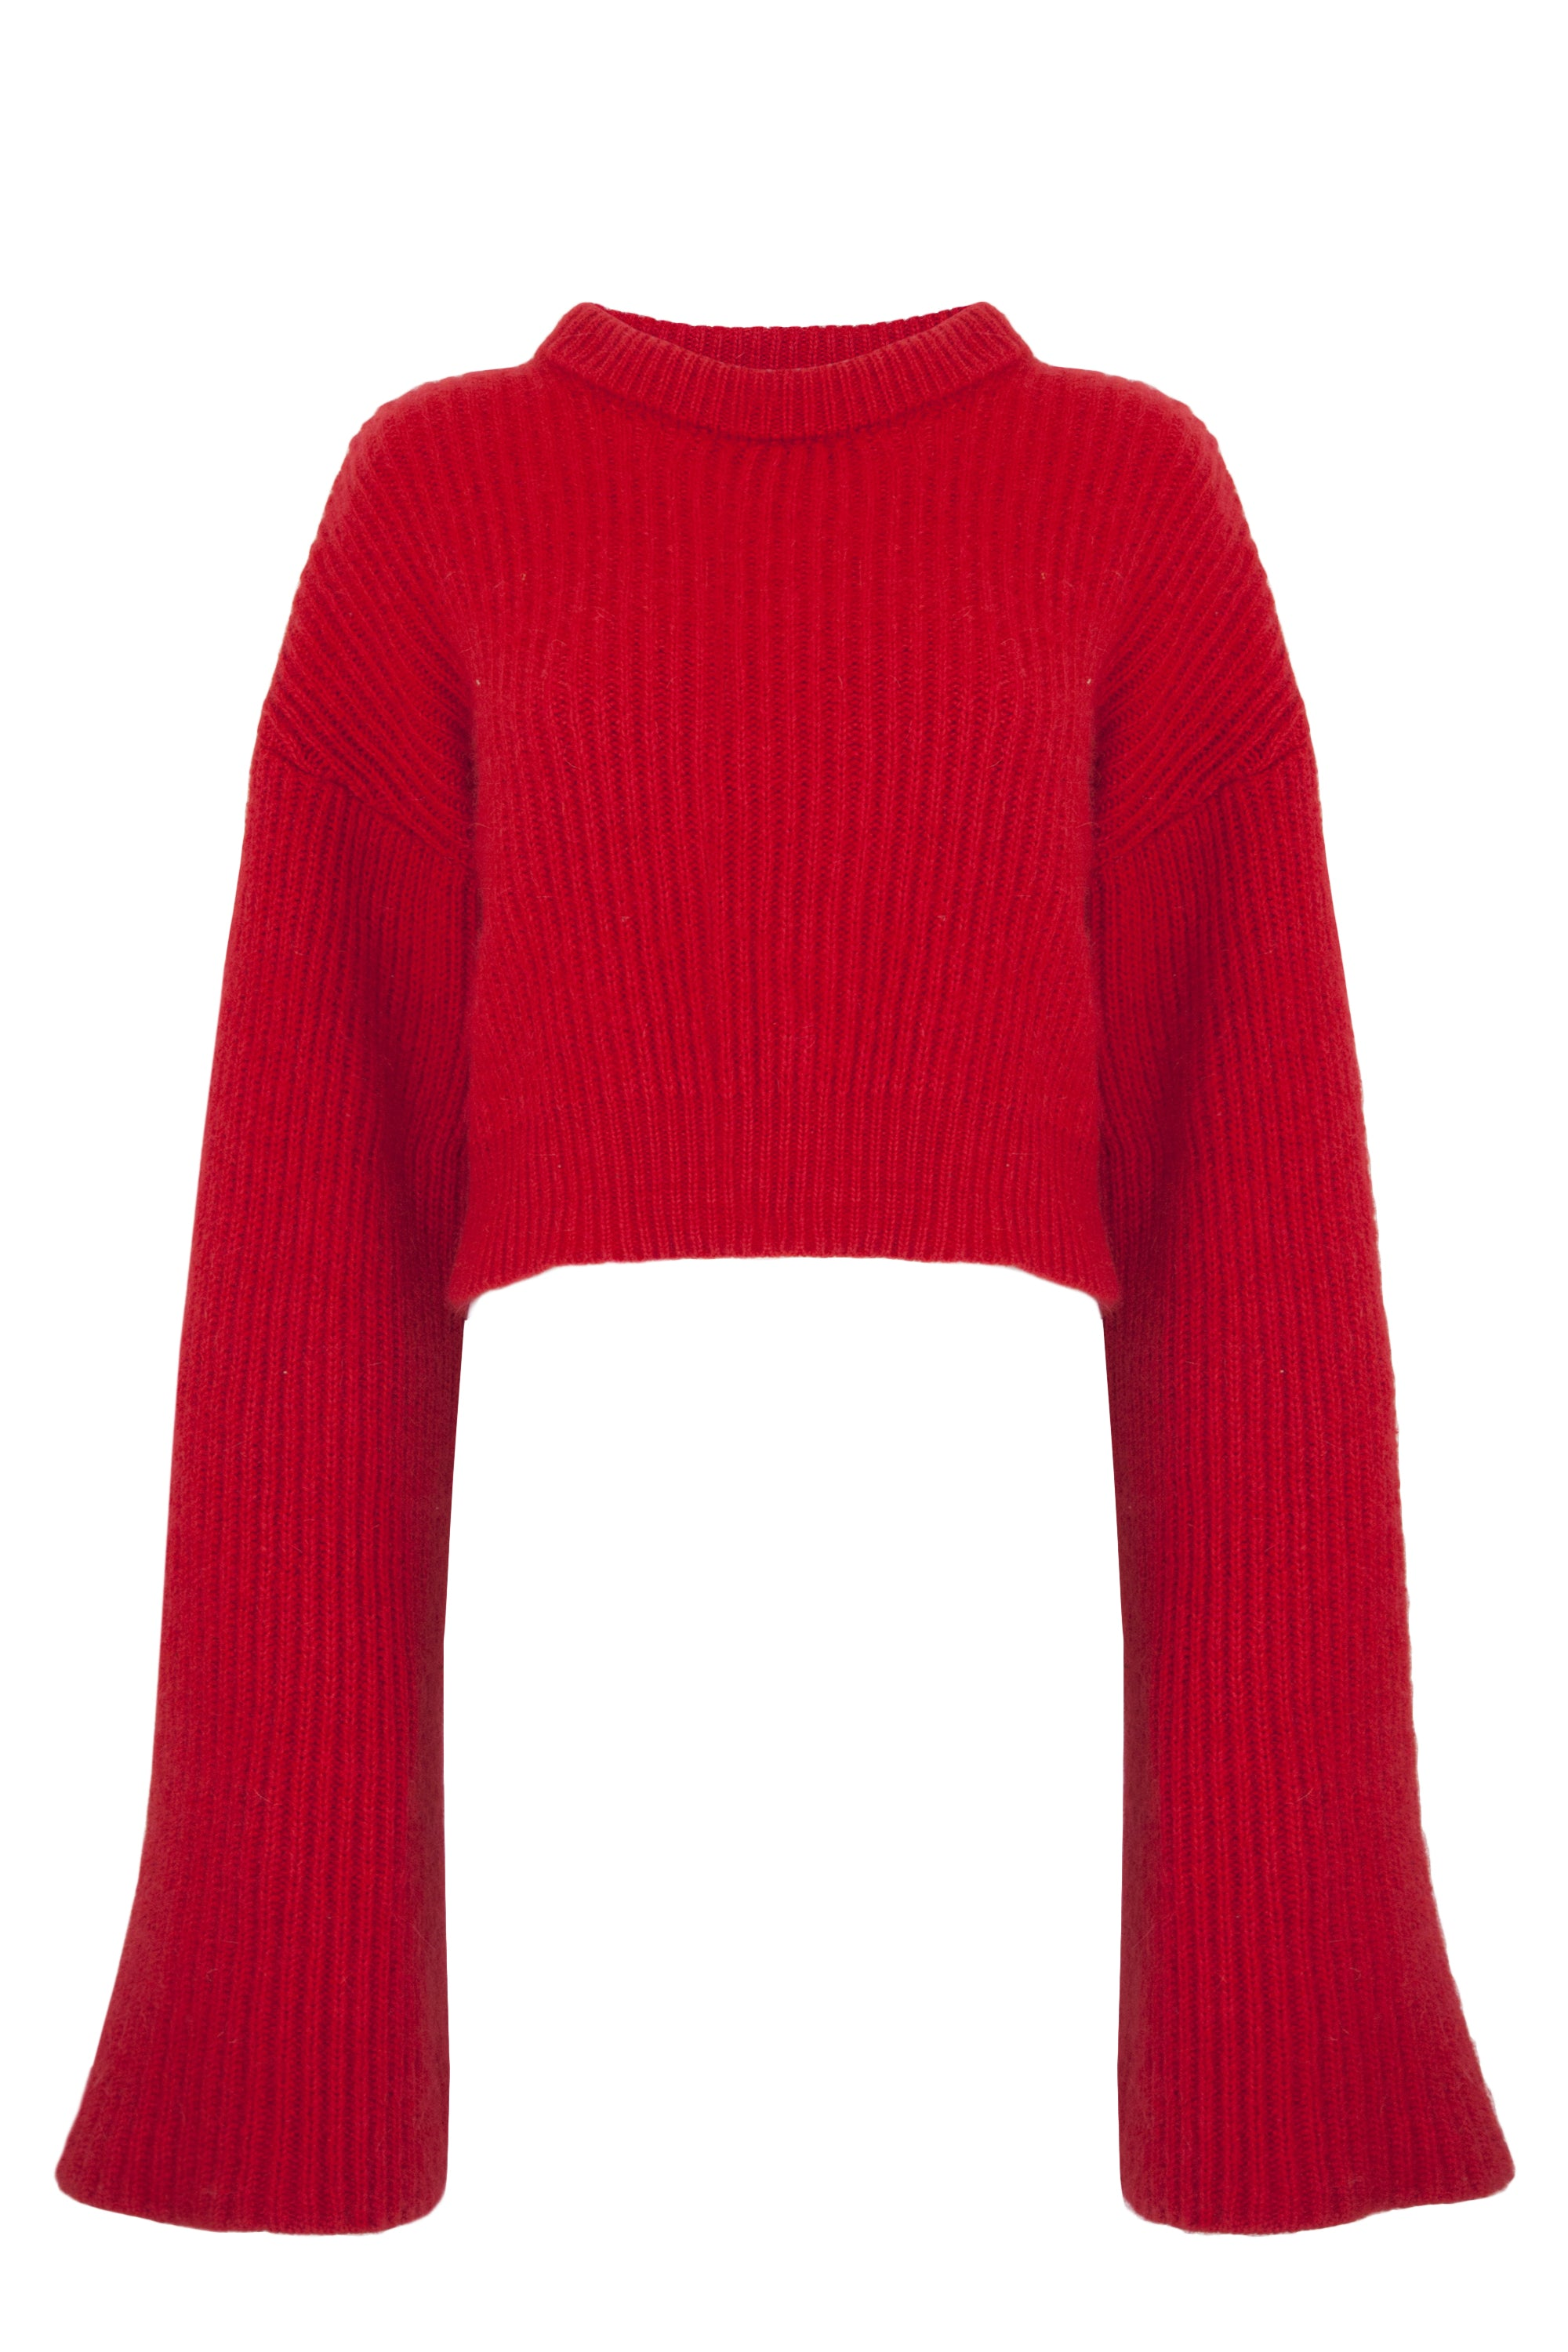 The Fisherman's Rib Jumper